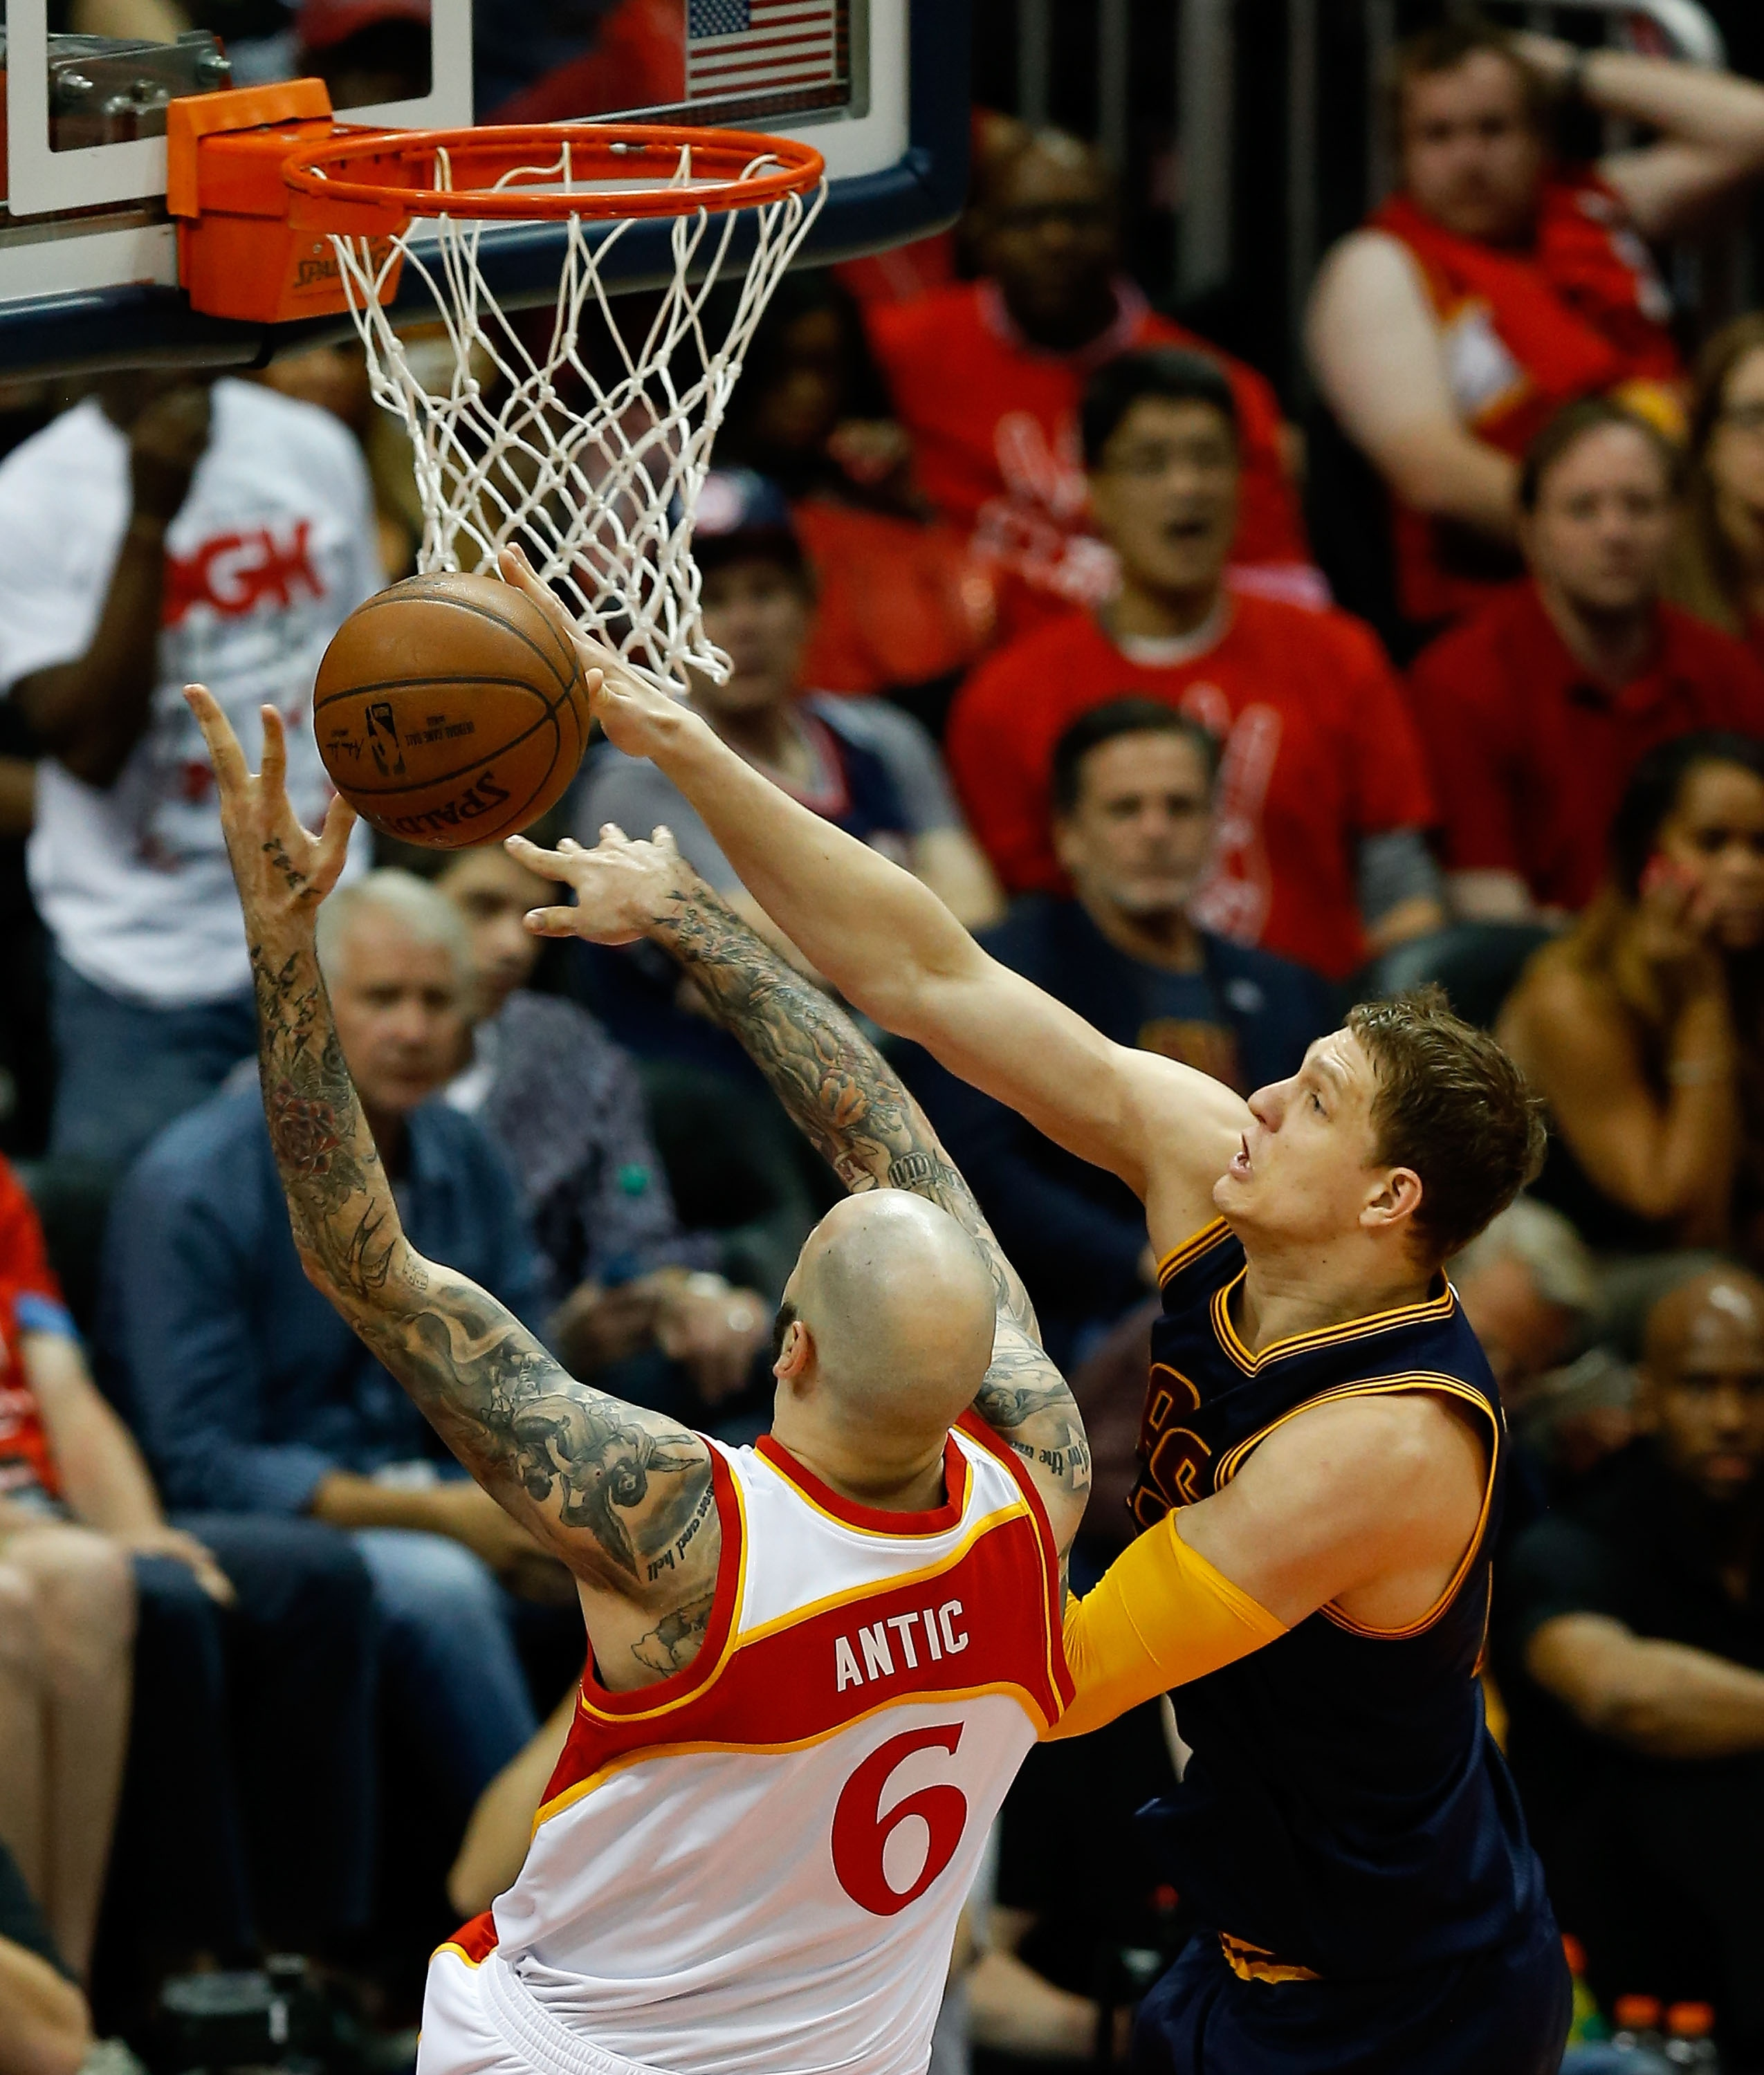 Timofey Mozgov rejects Pero Antic. (Mike Zarrilli/Getty Images)